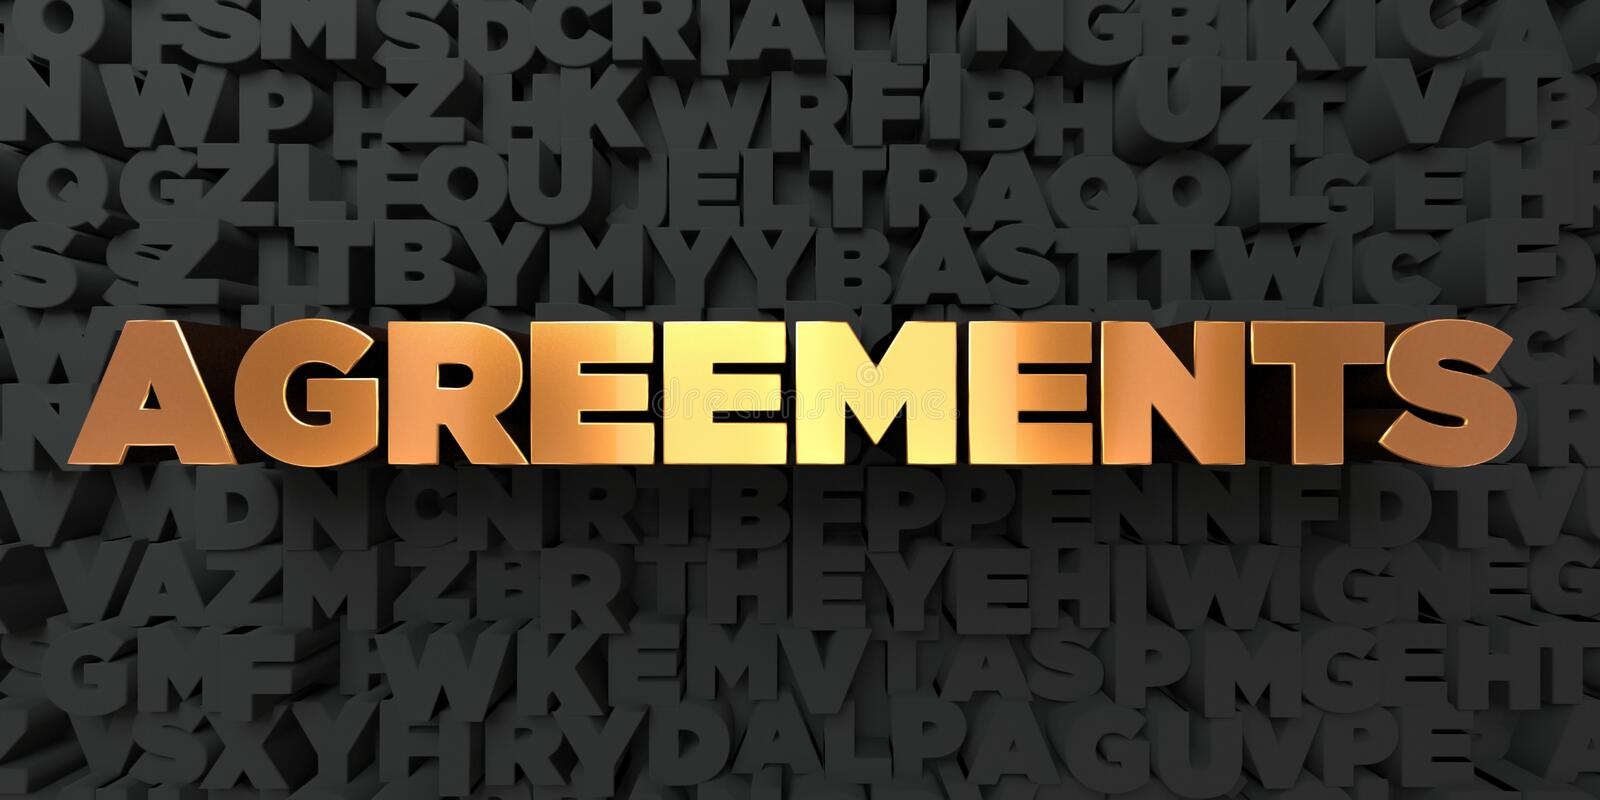 Agreements - Gold text on black background - 3D rendered royalty free stock picture. This image can be used for an online website banner ad or a print postcard stock illustration